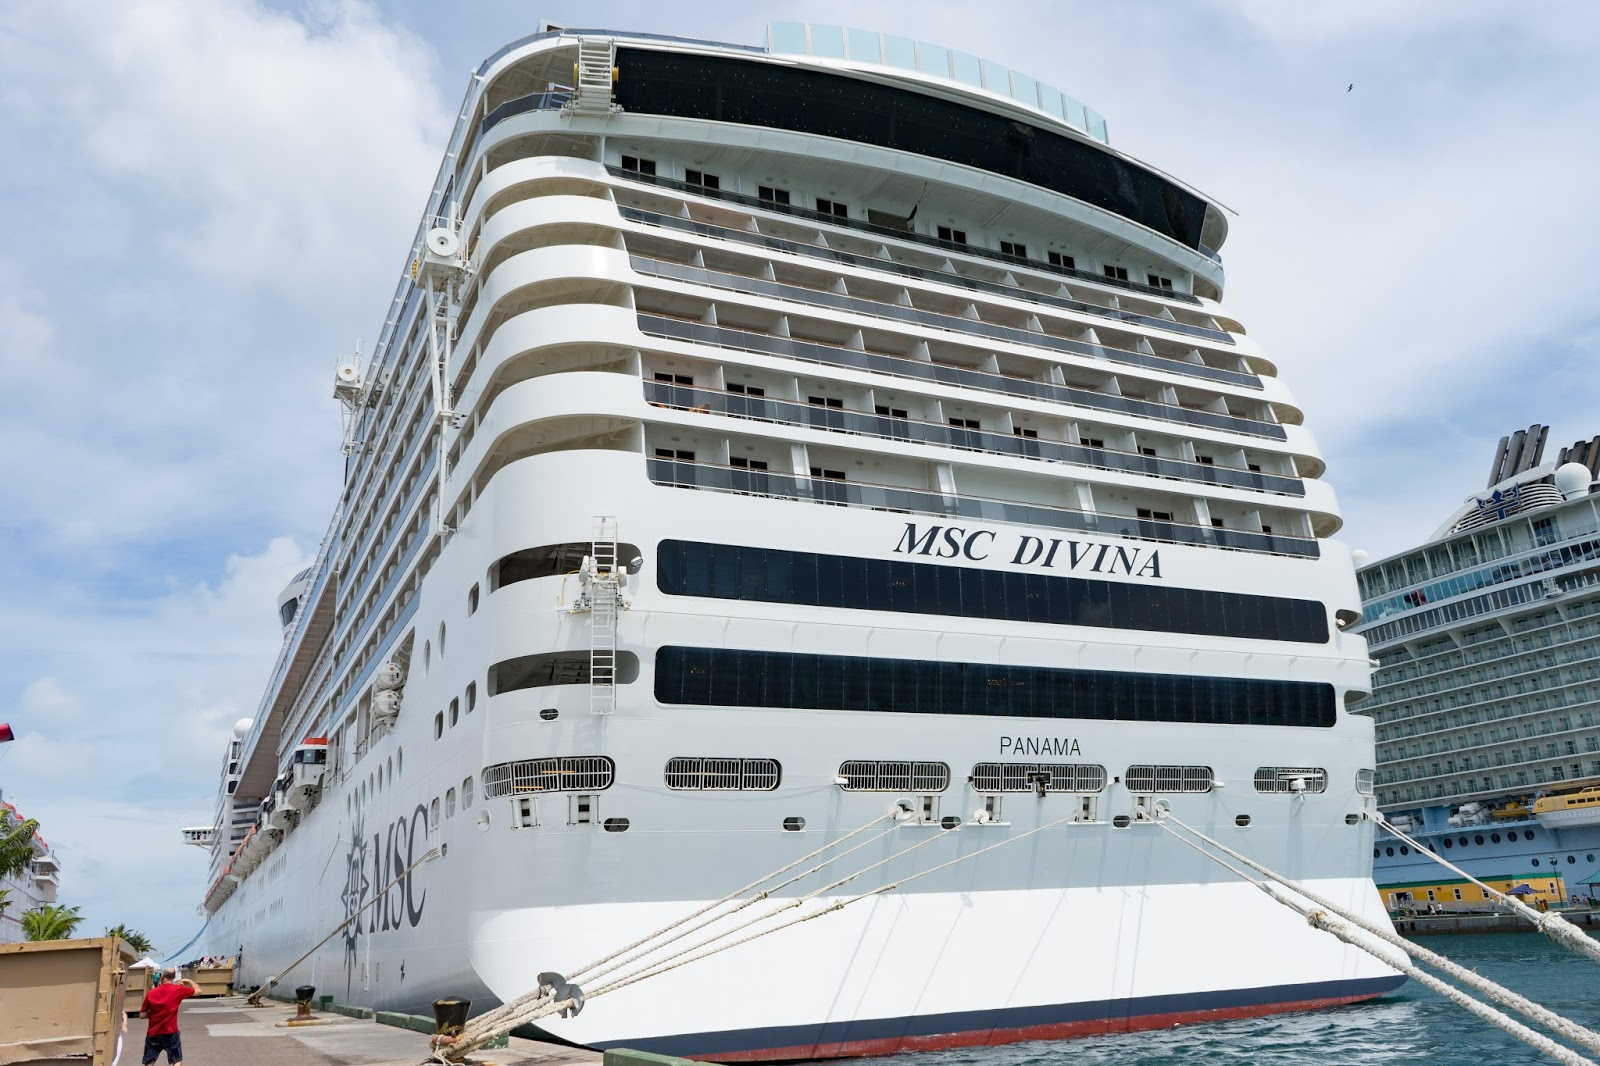 The Cheerful Cruiser Ten Tips And Truths About The MSC Divina - Msc divina cruise